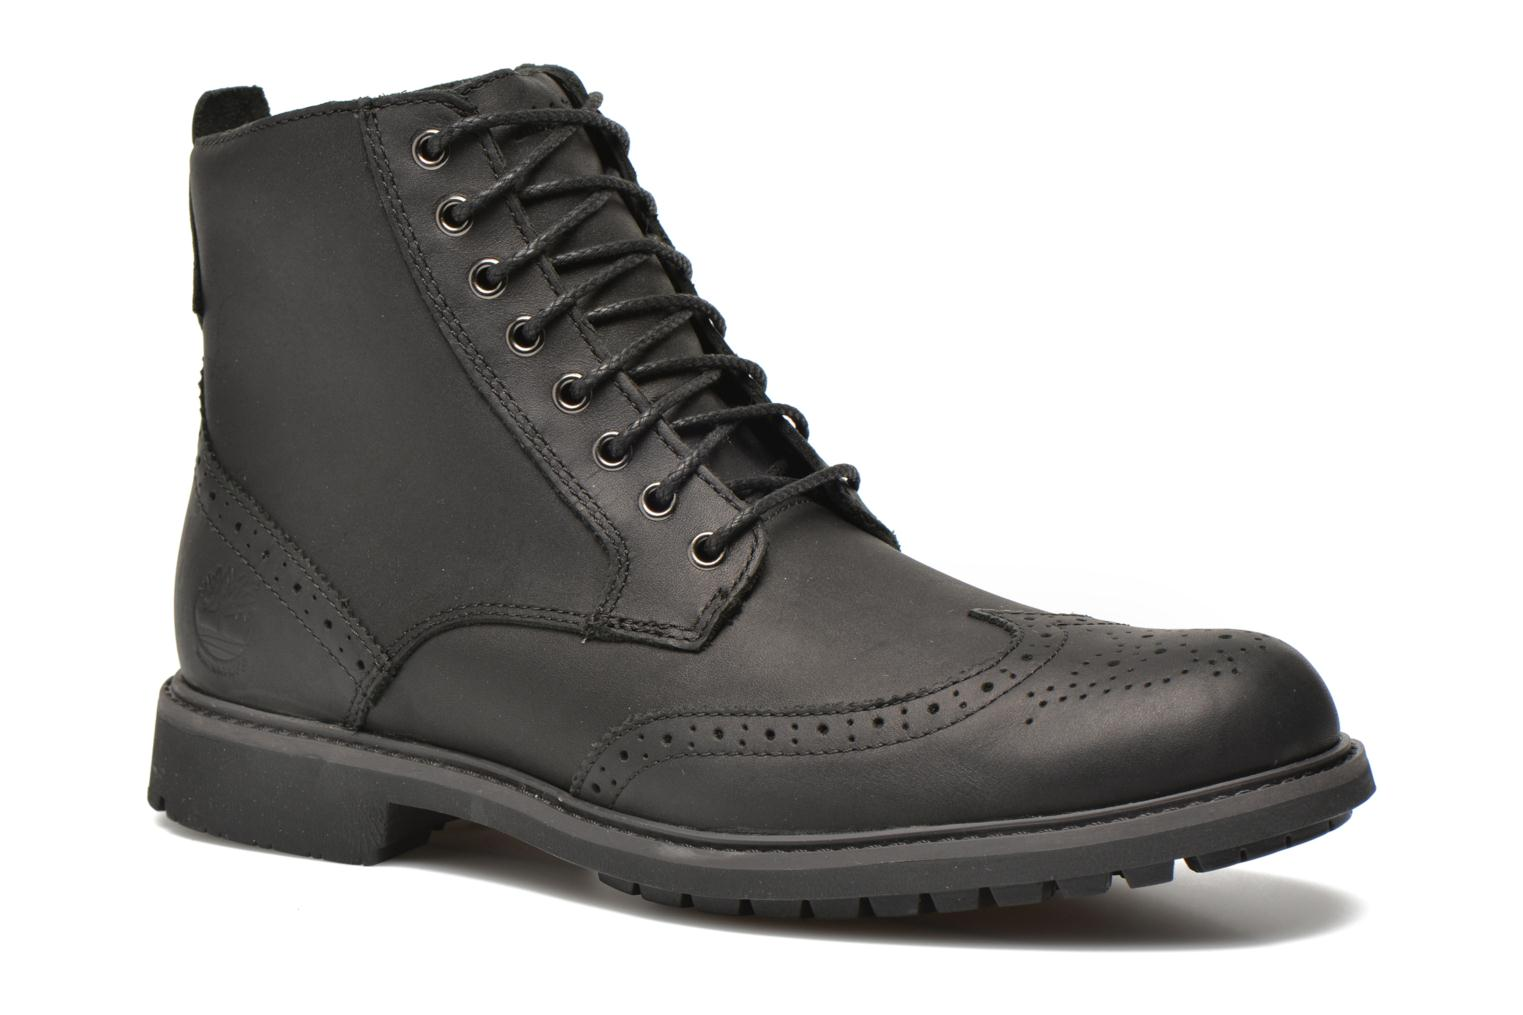 Stormbuck Waterproof Brogue Boots Black